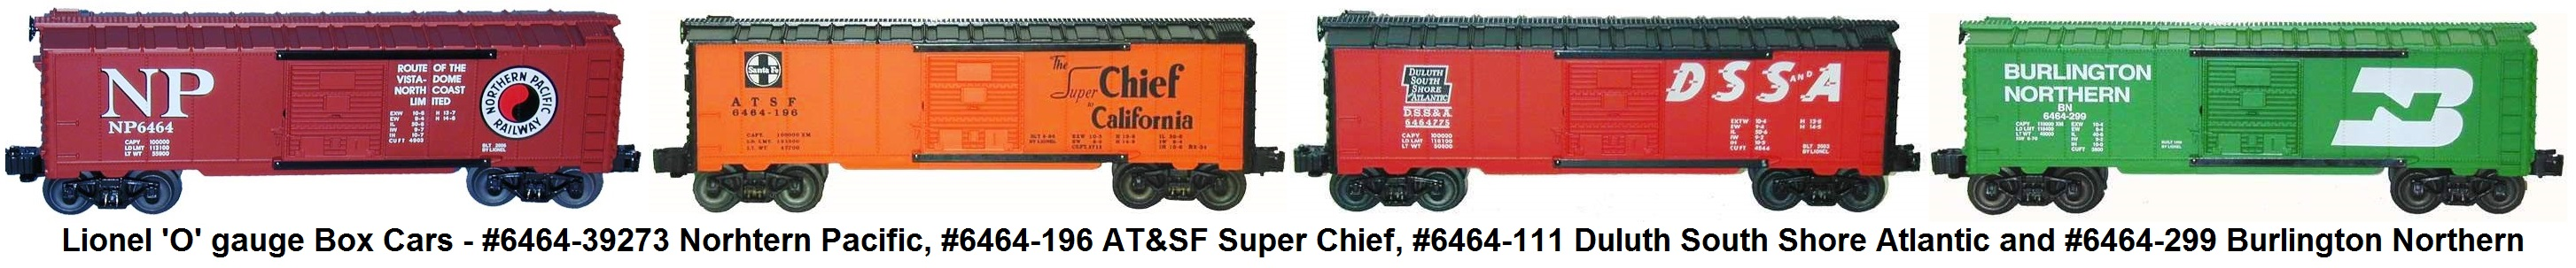 Lionel 'O' gauge #6464-39273 Northern Pacific, #6464-196 AT&SF Super Chief, #6464-111 Duluth Shouth Shore Atlantic and #6464-299 Burlington Northern Box Cars